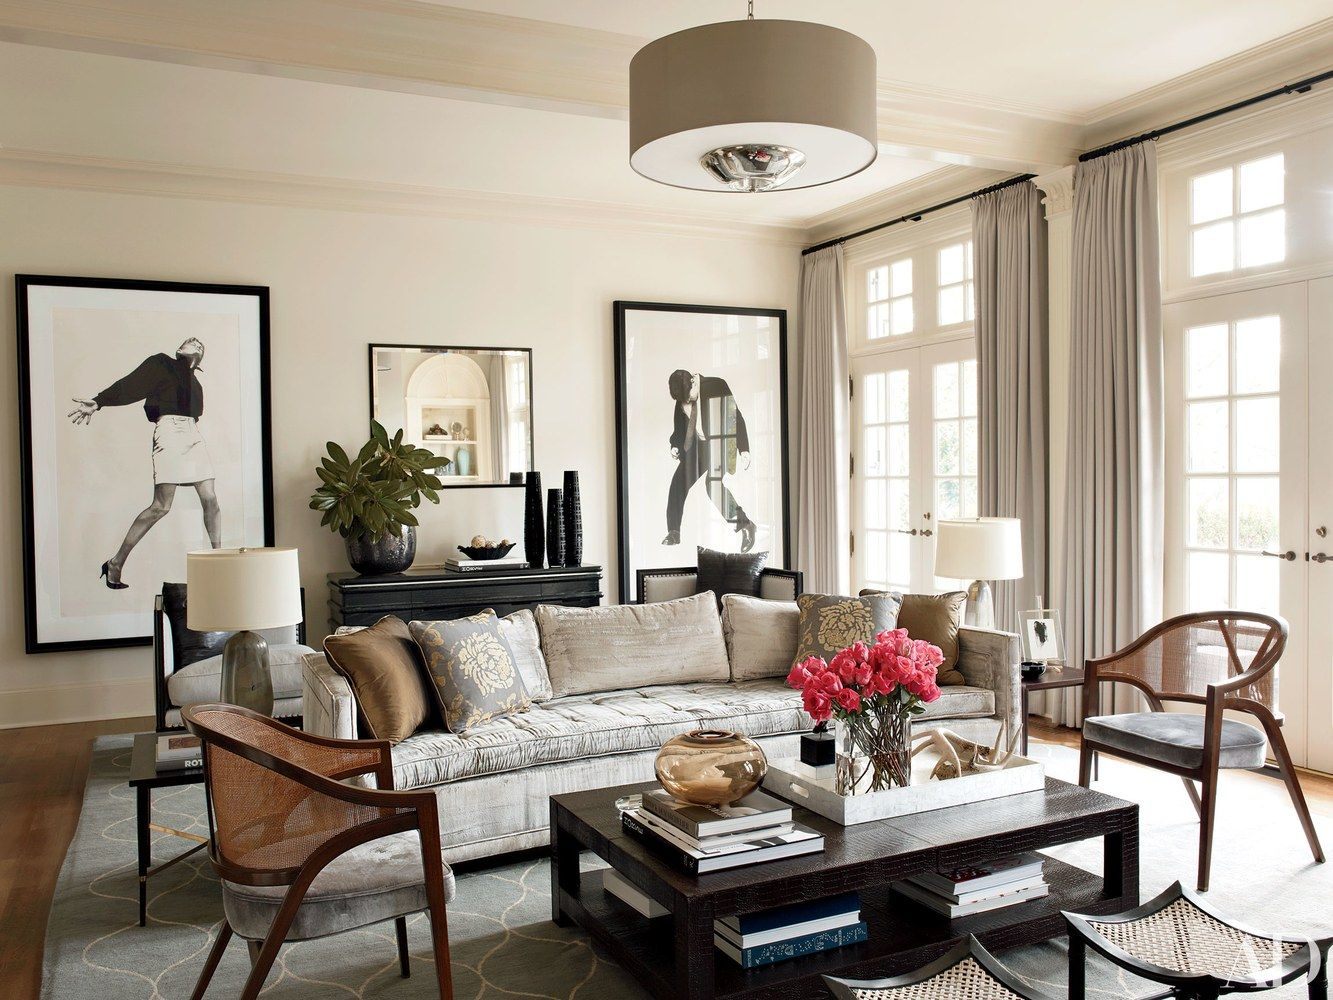 The Classic American Decorating by AD100 List - II Part | Living ...